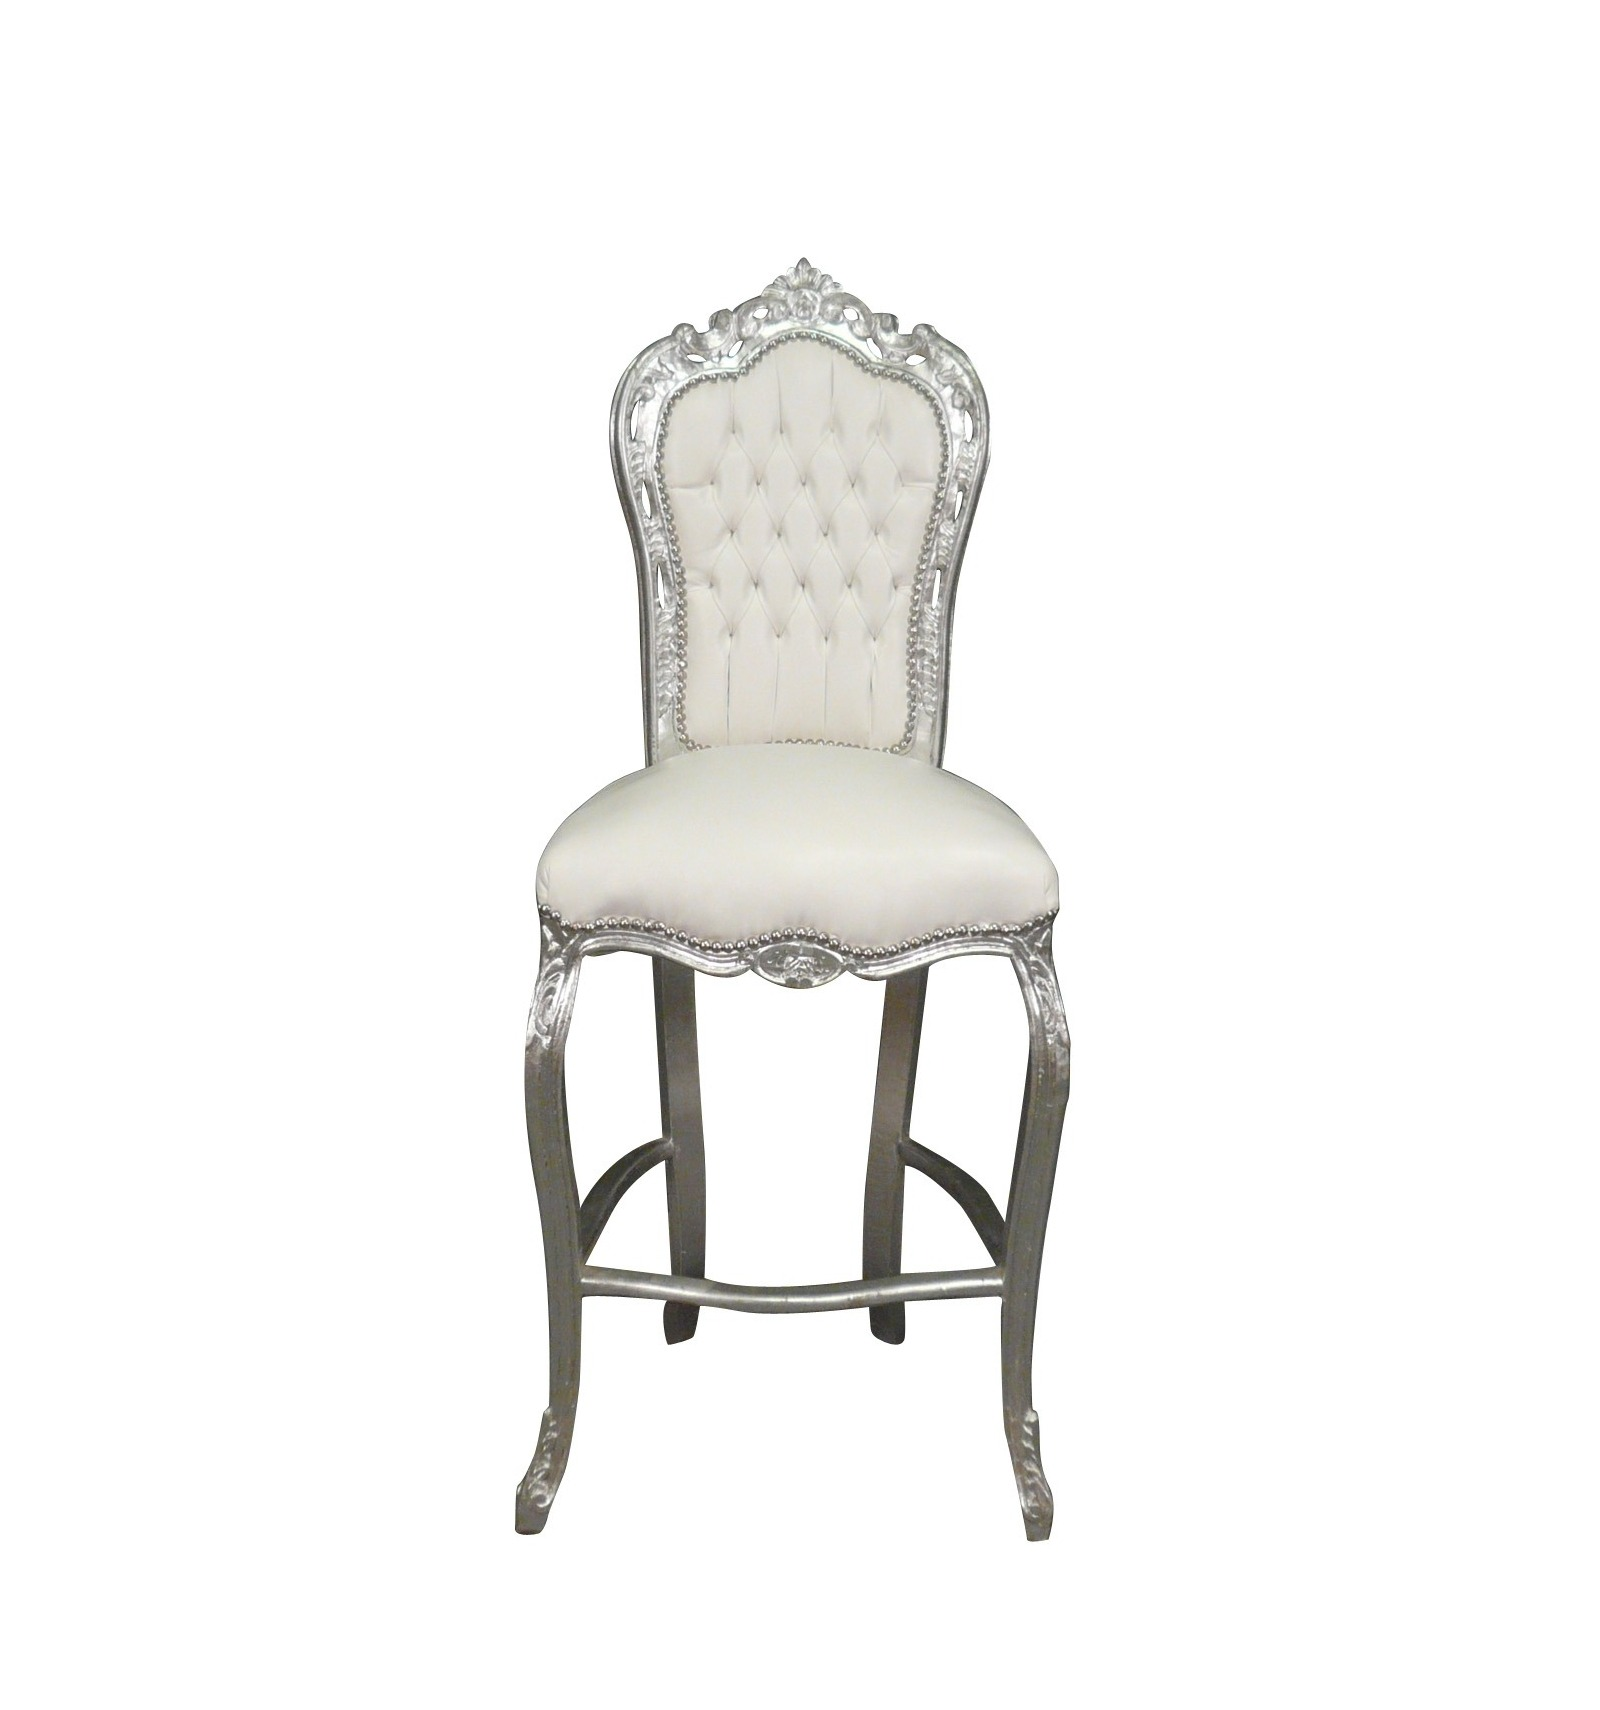 Chaise Style Louis Xv Chaise Baroque De Bar Blanche Meuble Baroque